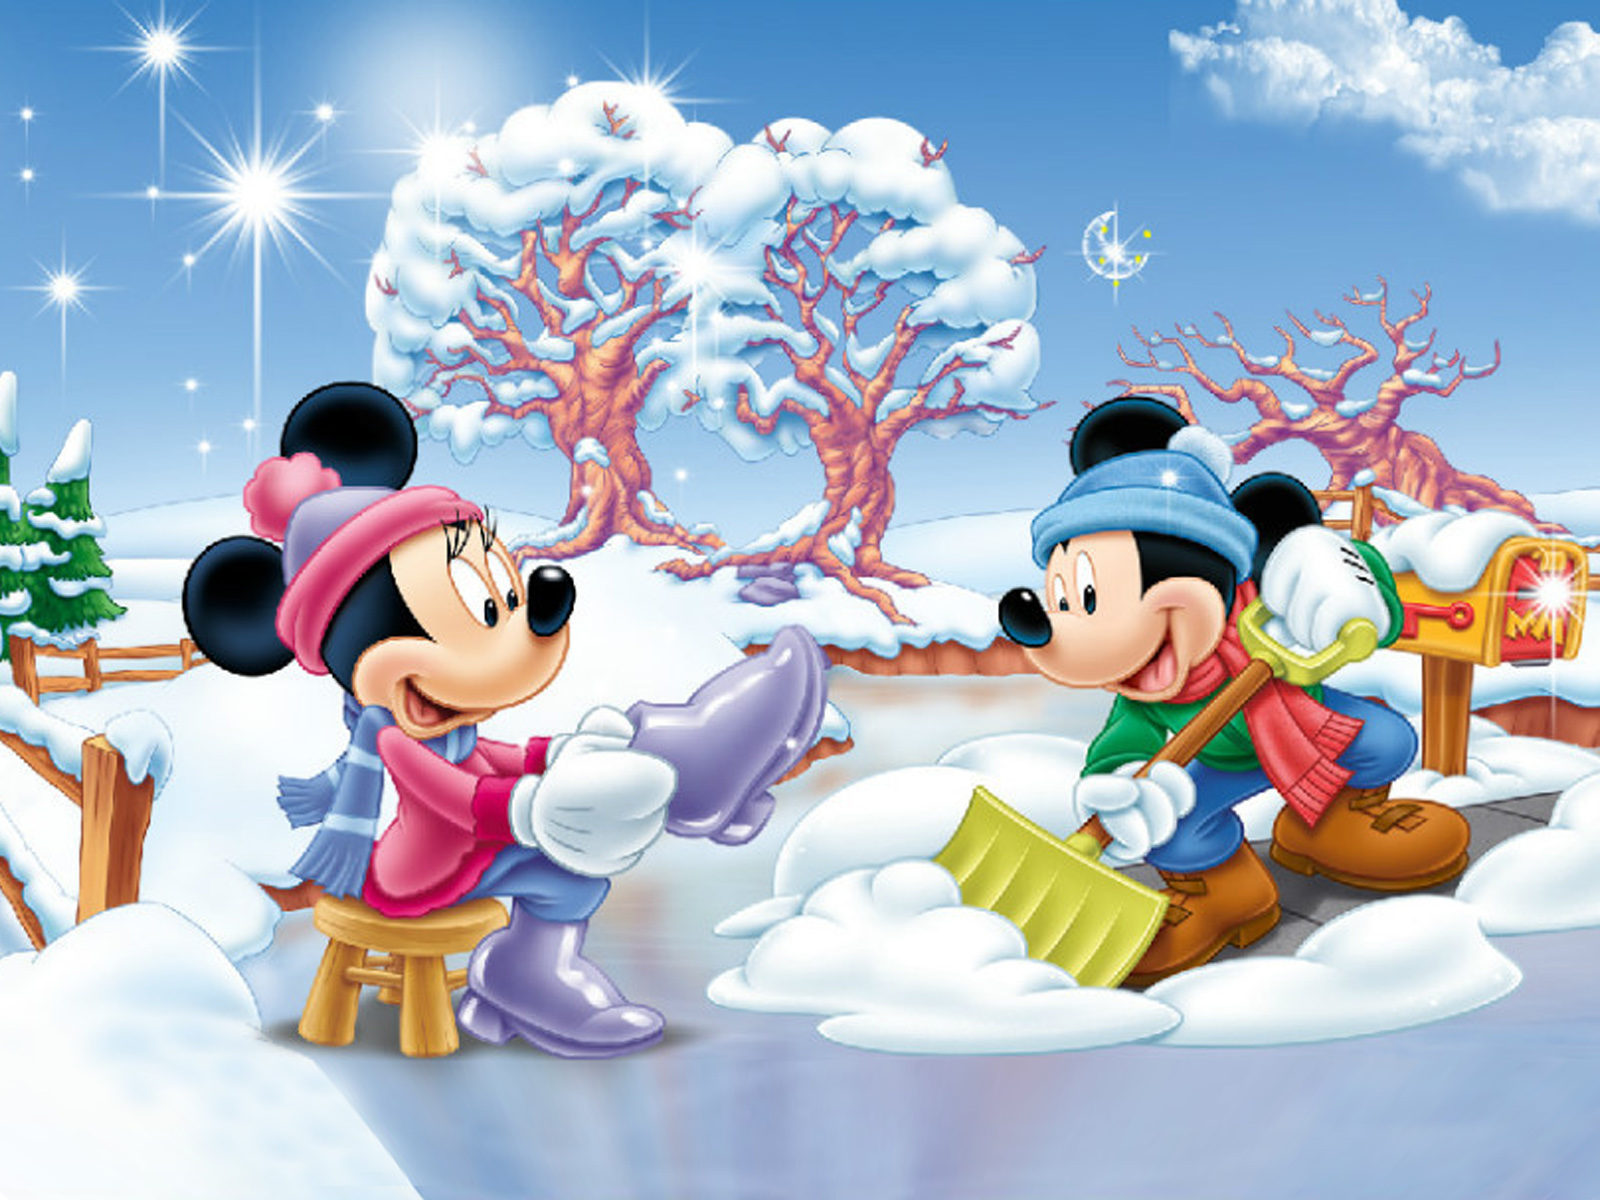 Pooh Wallpaper Iphone Minnie And Mickey Mouse Winter Snow Fence Yard Blue Sky